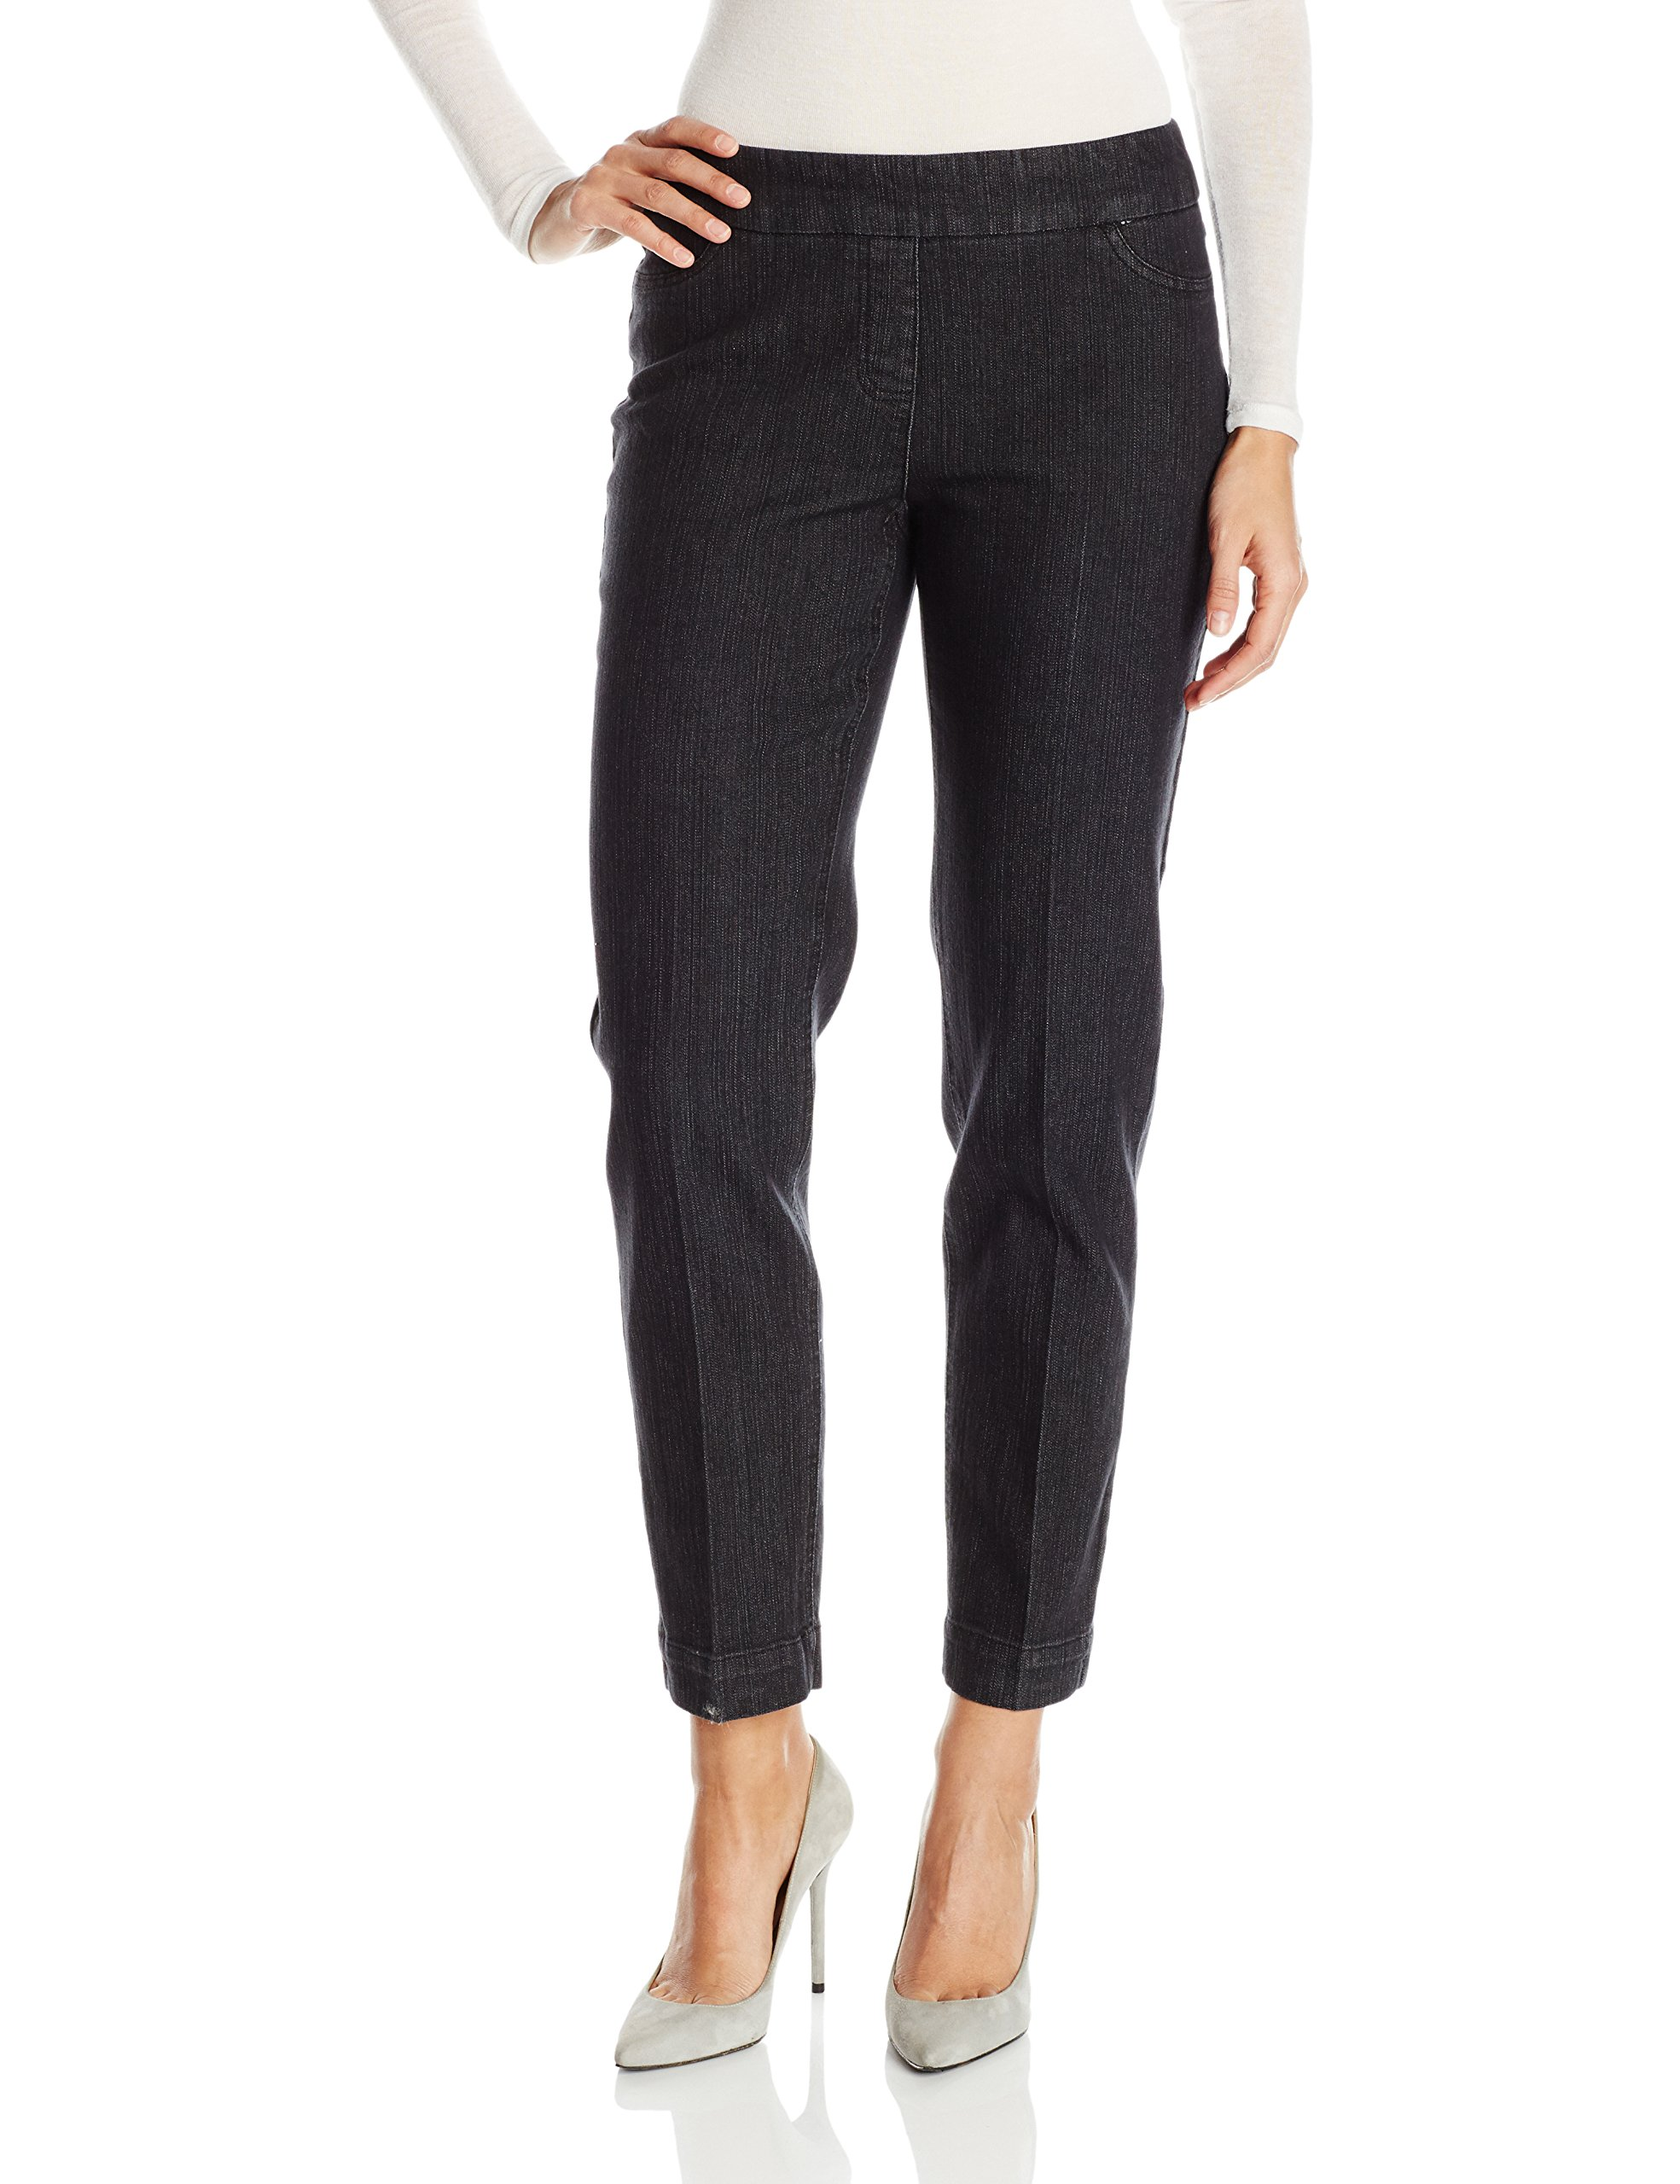 SLIM-SATION Women's Wide Band Pull on Ankle Pant with Tummy Control, Black Denim, 14